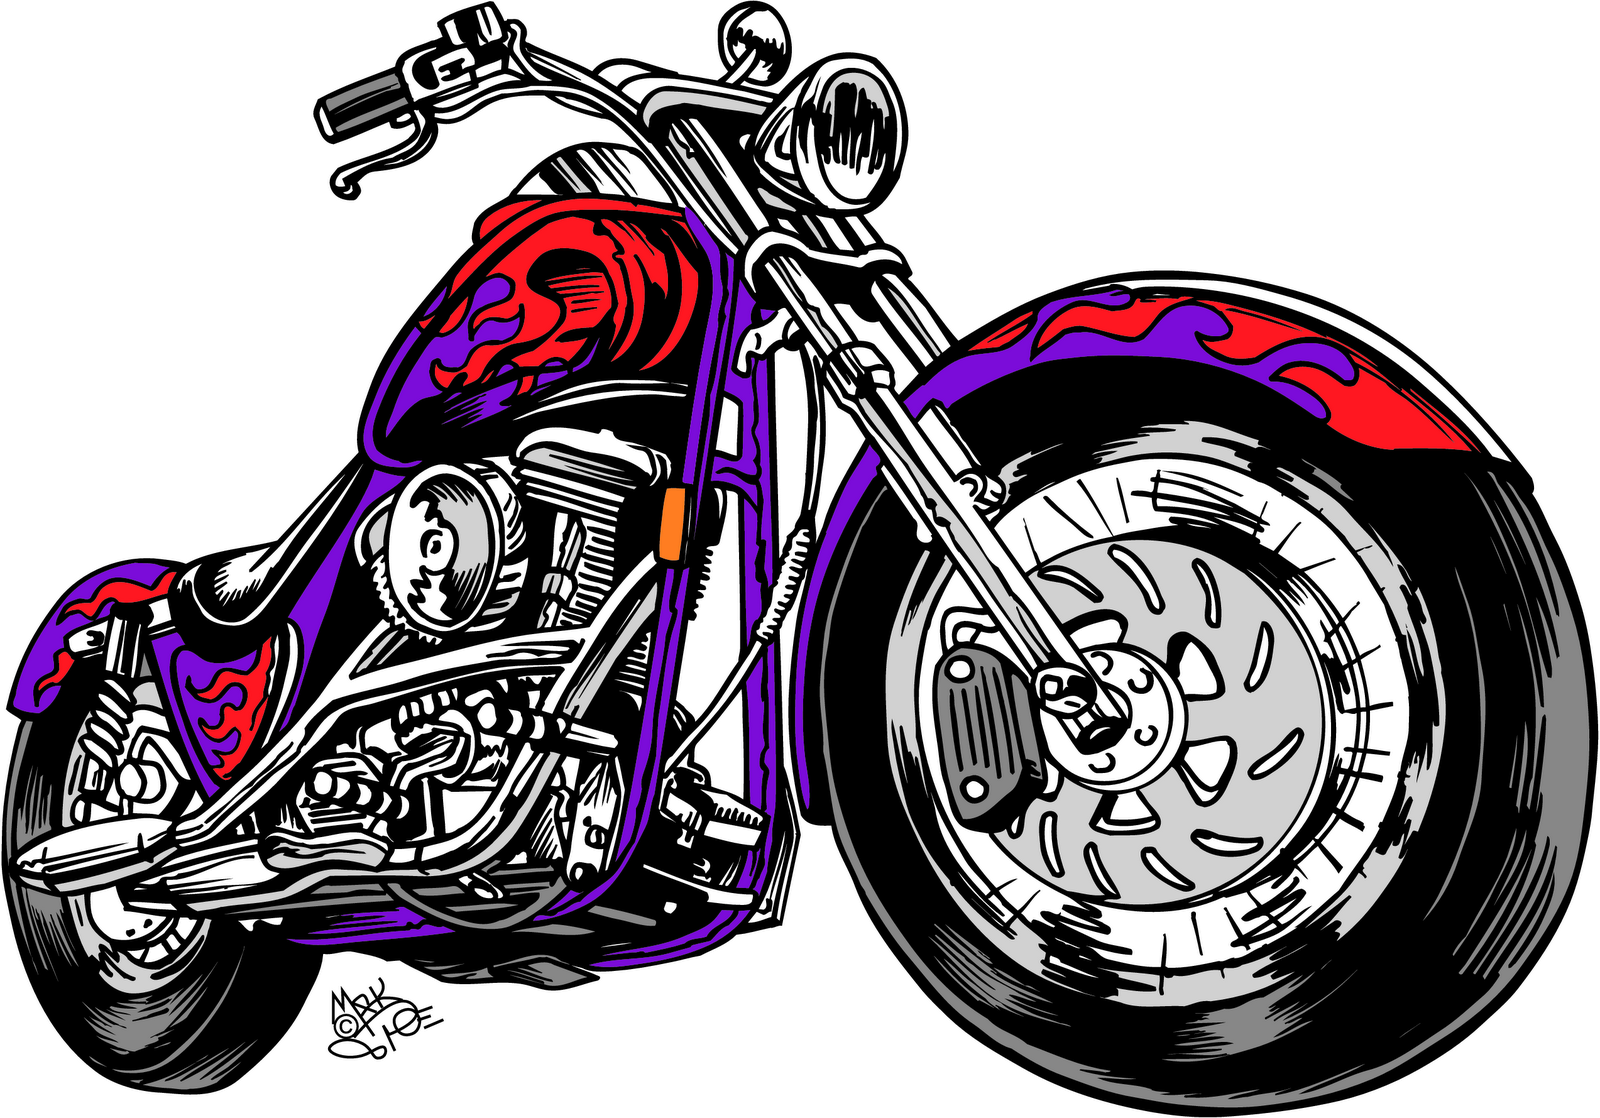 Happy birthday harley davidson mc free clipart png transparent stock Free Motorcycle Cliparts, Download Free Clip Art, Free Clip Art on ... png transparent stock